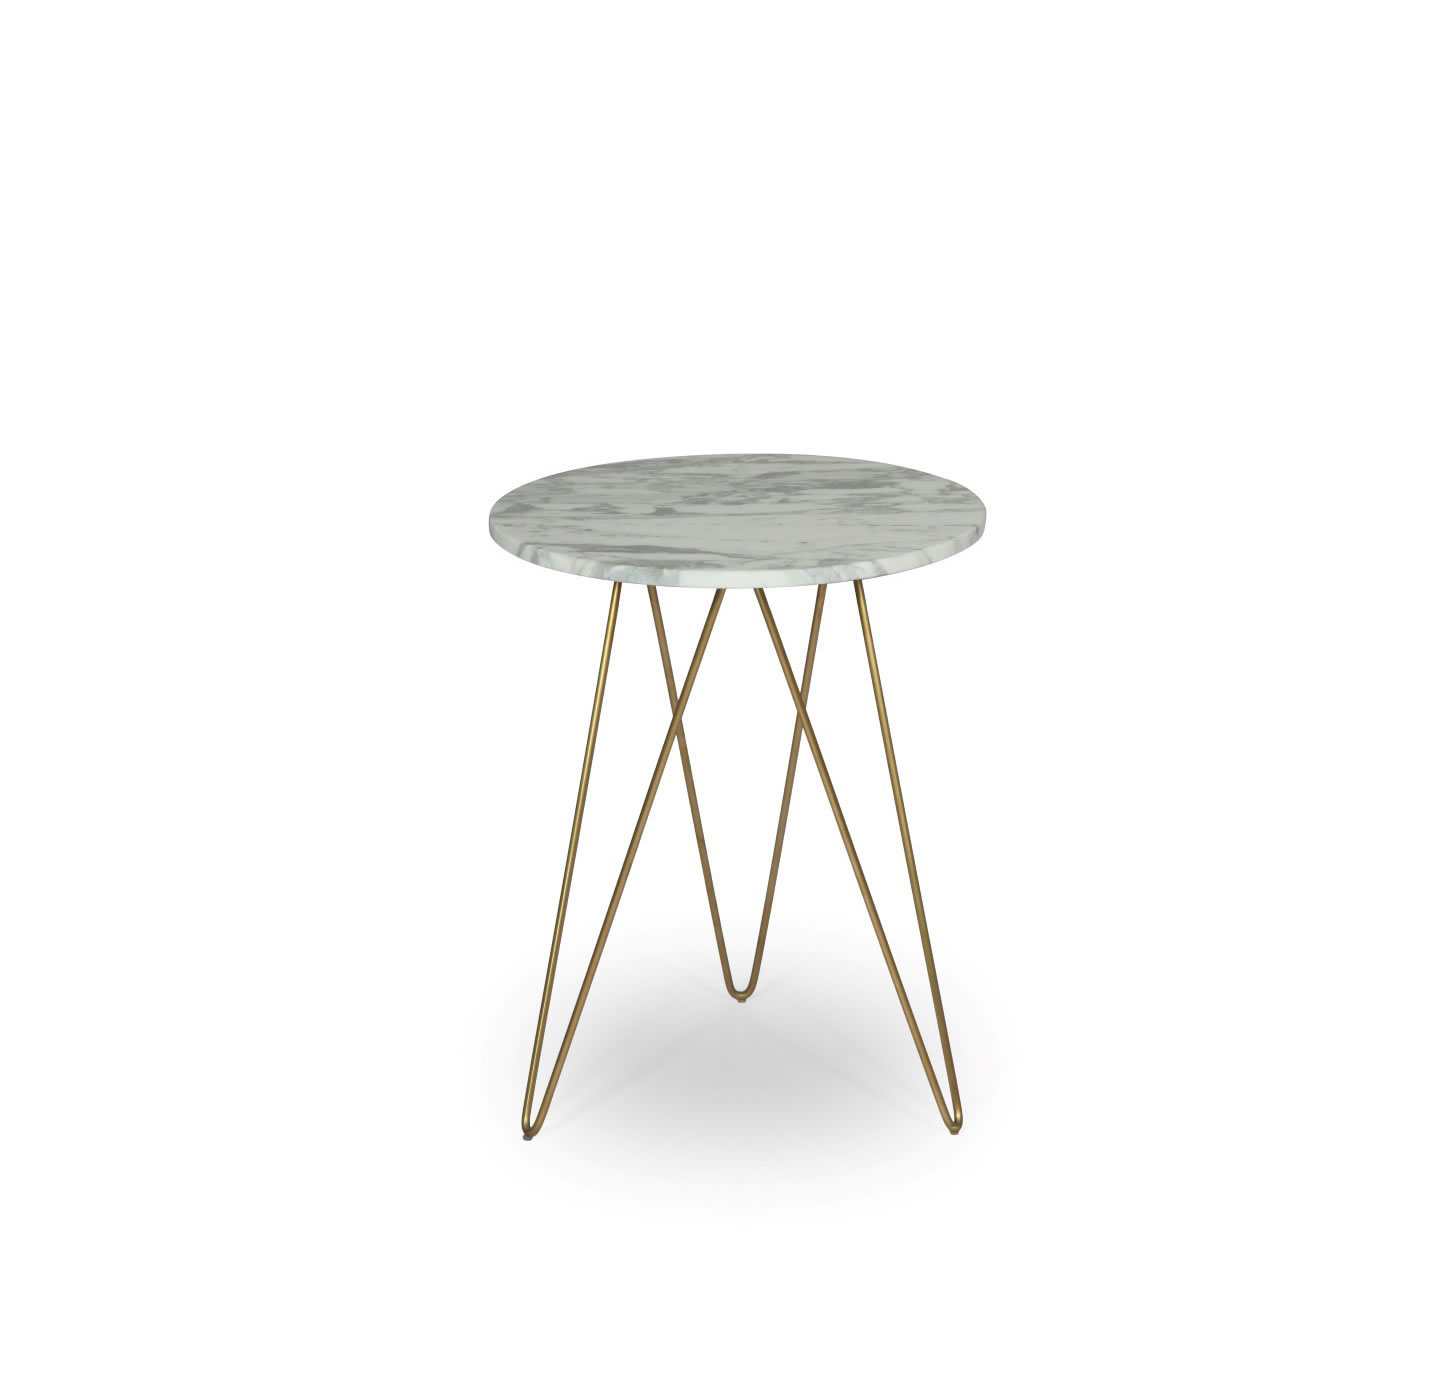 ion design furniture solo accent table marble top gold base with glass coffee retro small dresser target patio parasol dark grey side island chairs rustic ashley bedroom seater